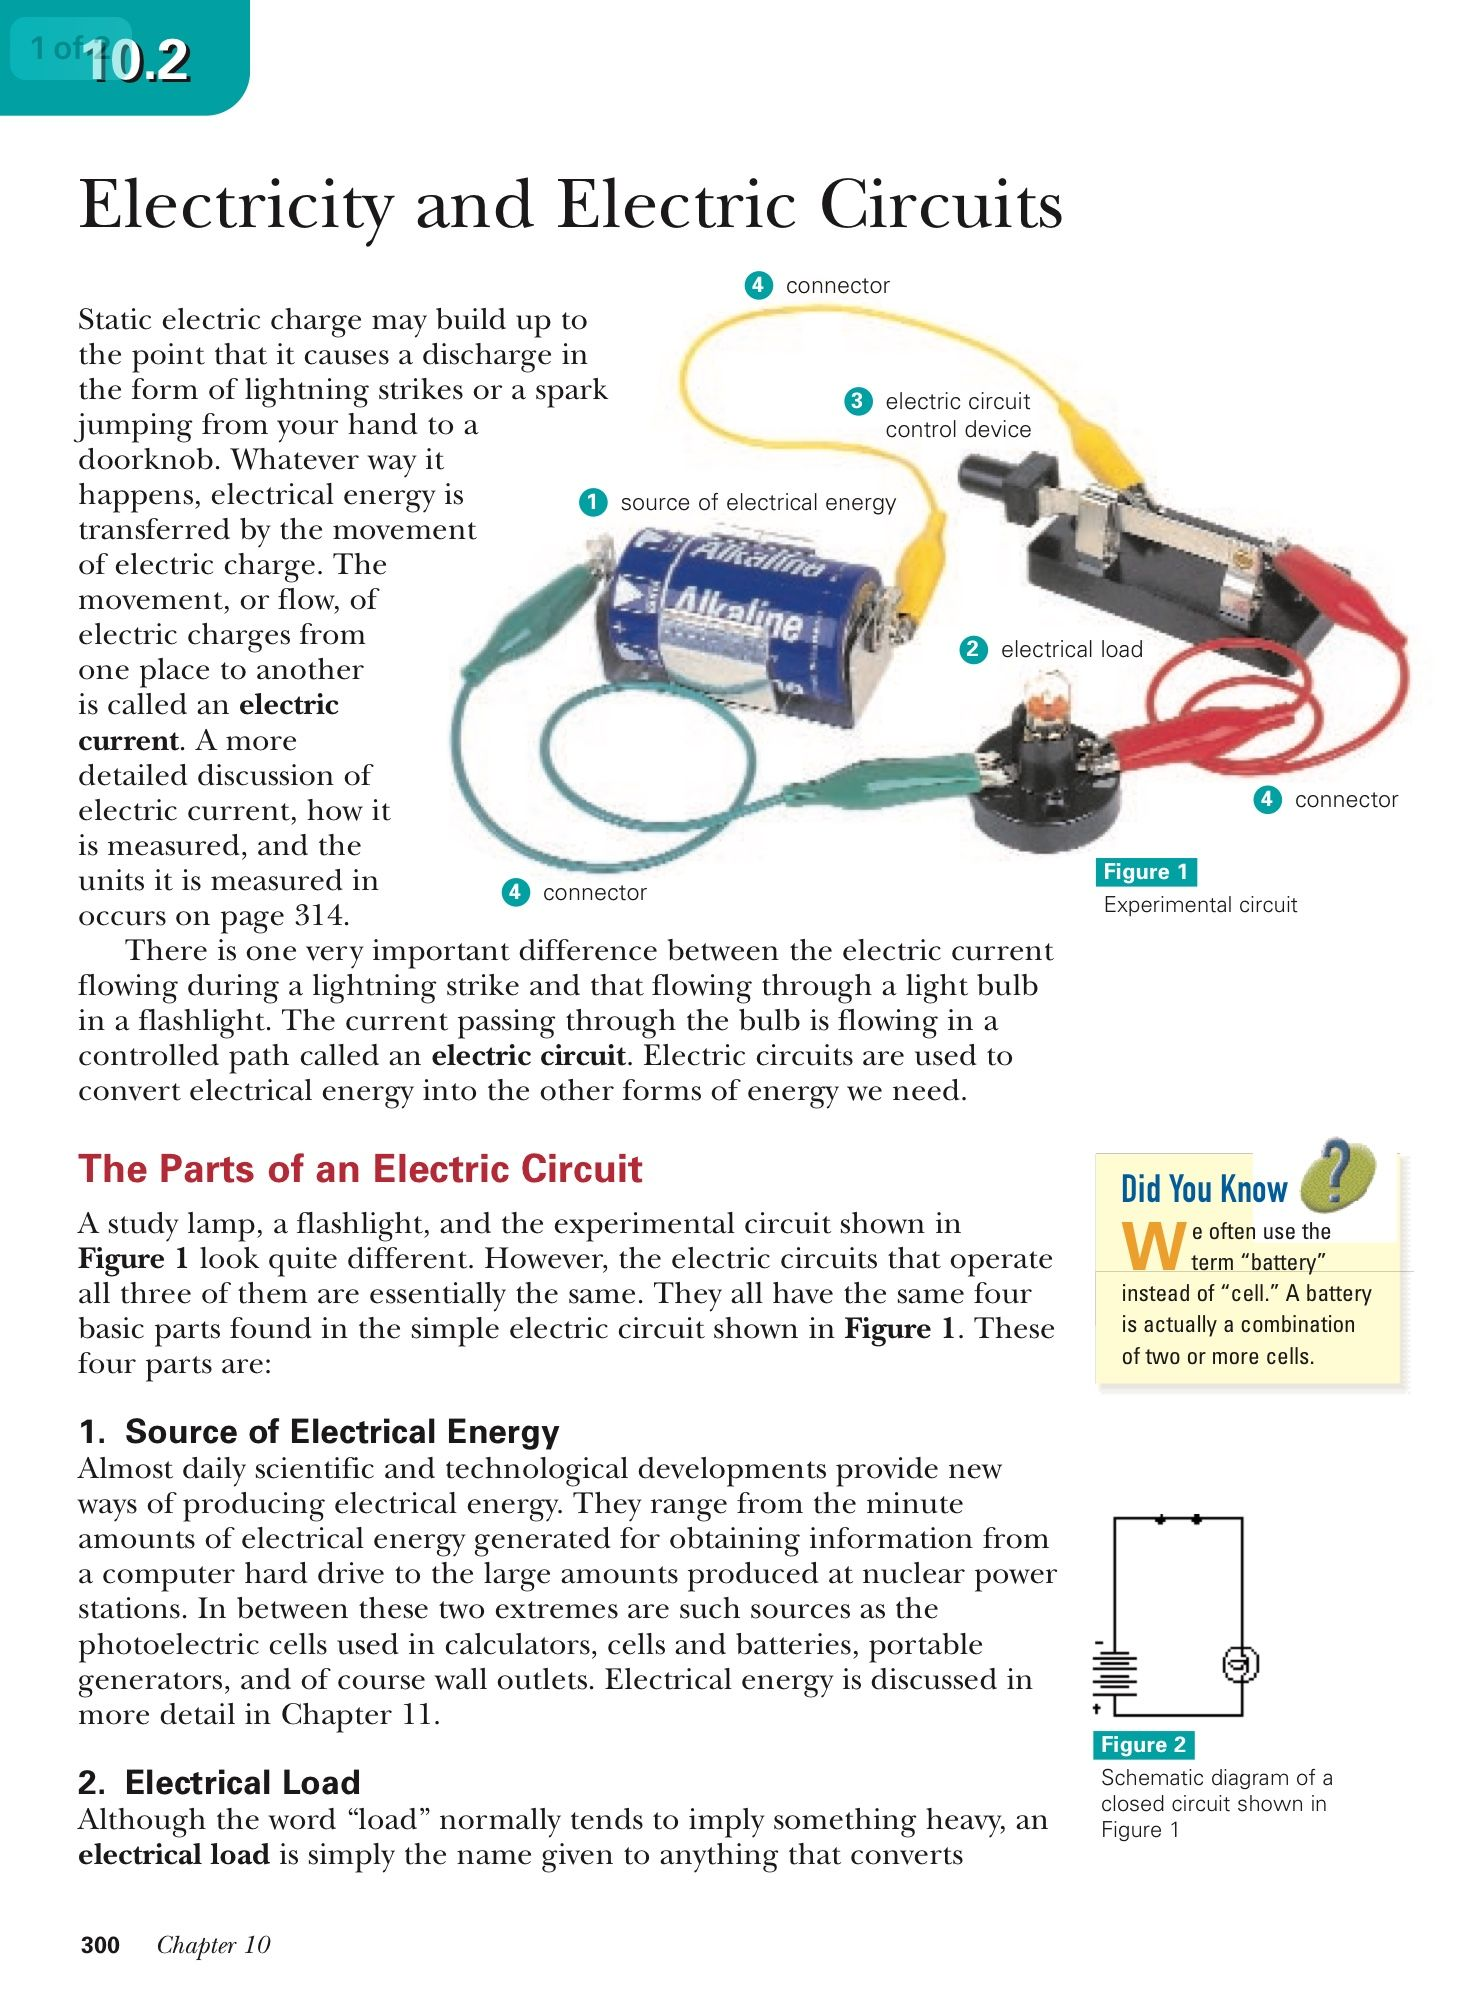 The Parts Of An Electric Circuit